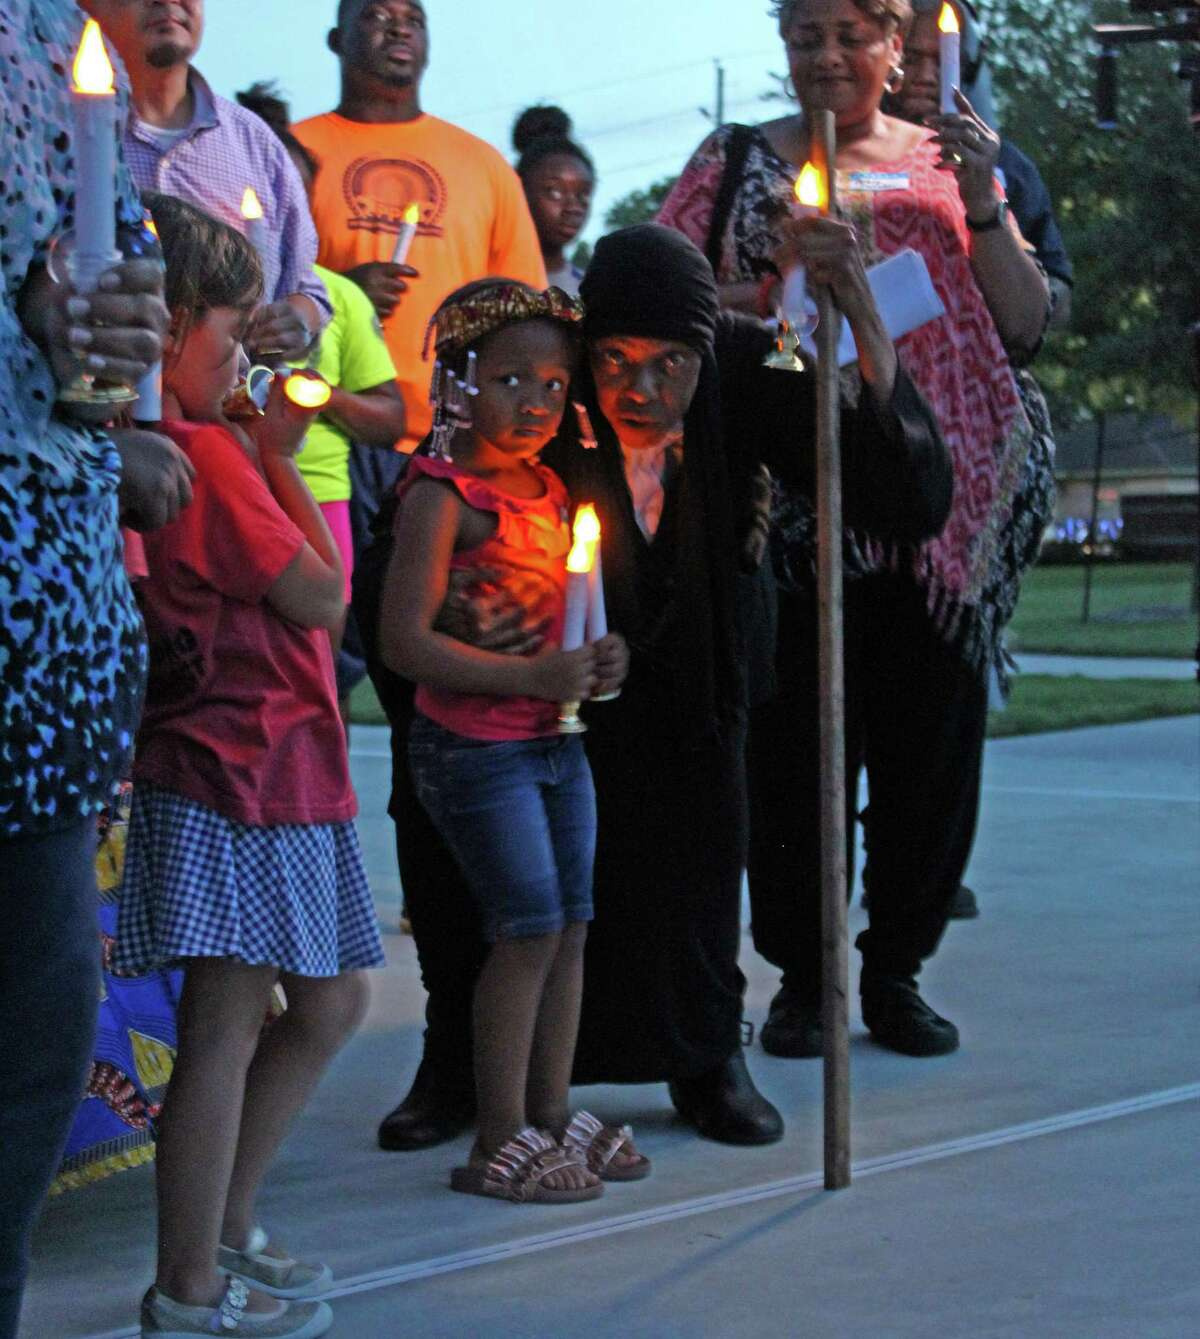 Juneteenth candlelight vigil honoring the Sugar Land 95 at Mayfield Park